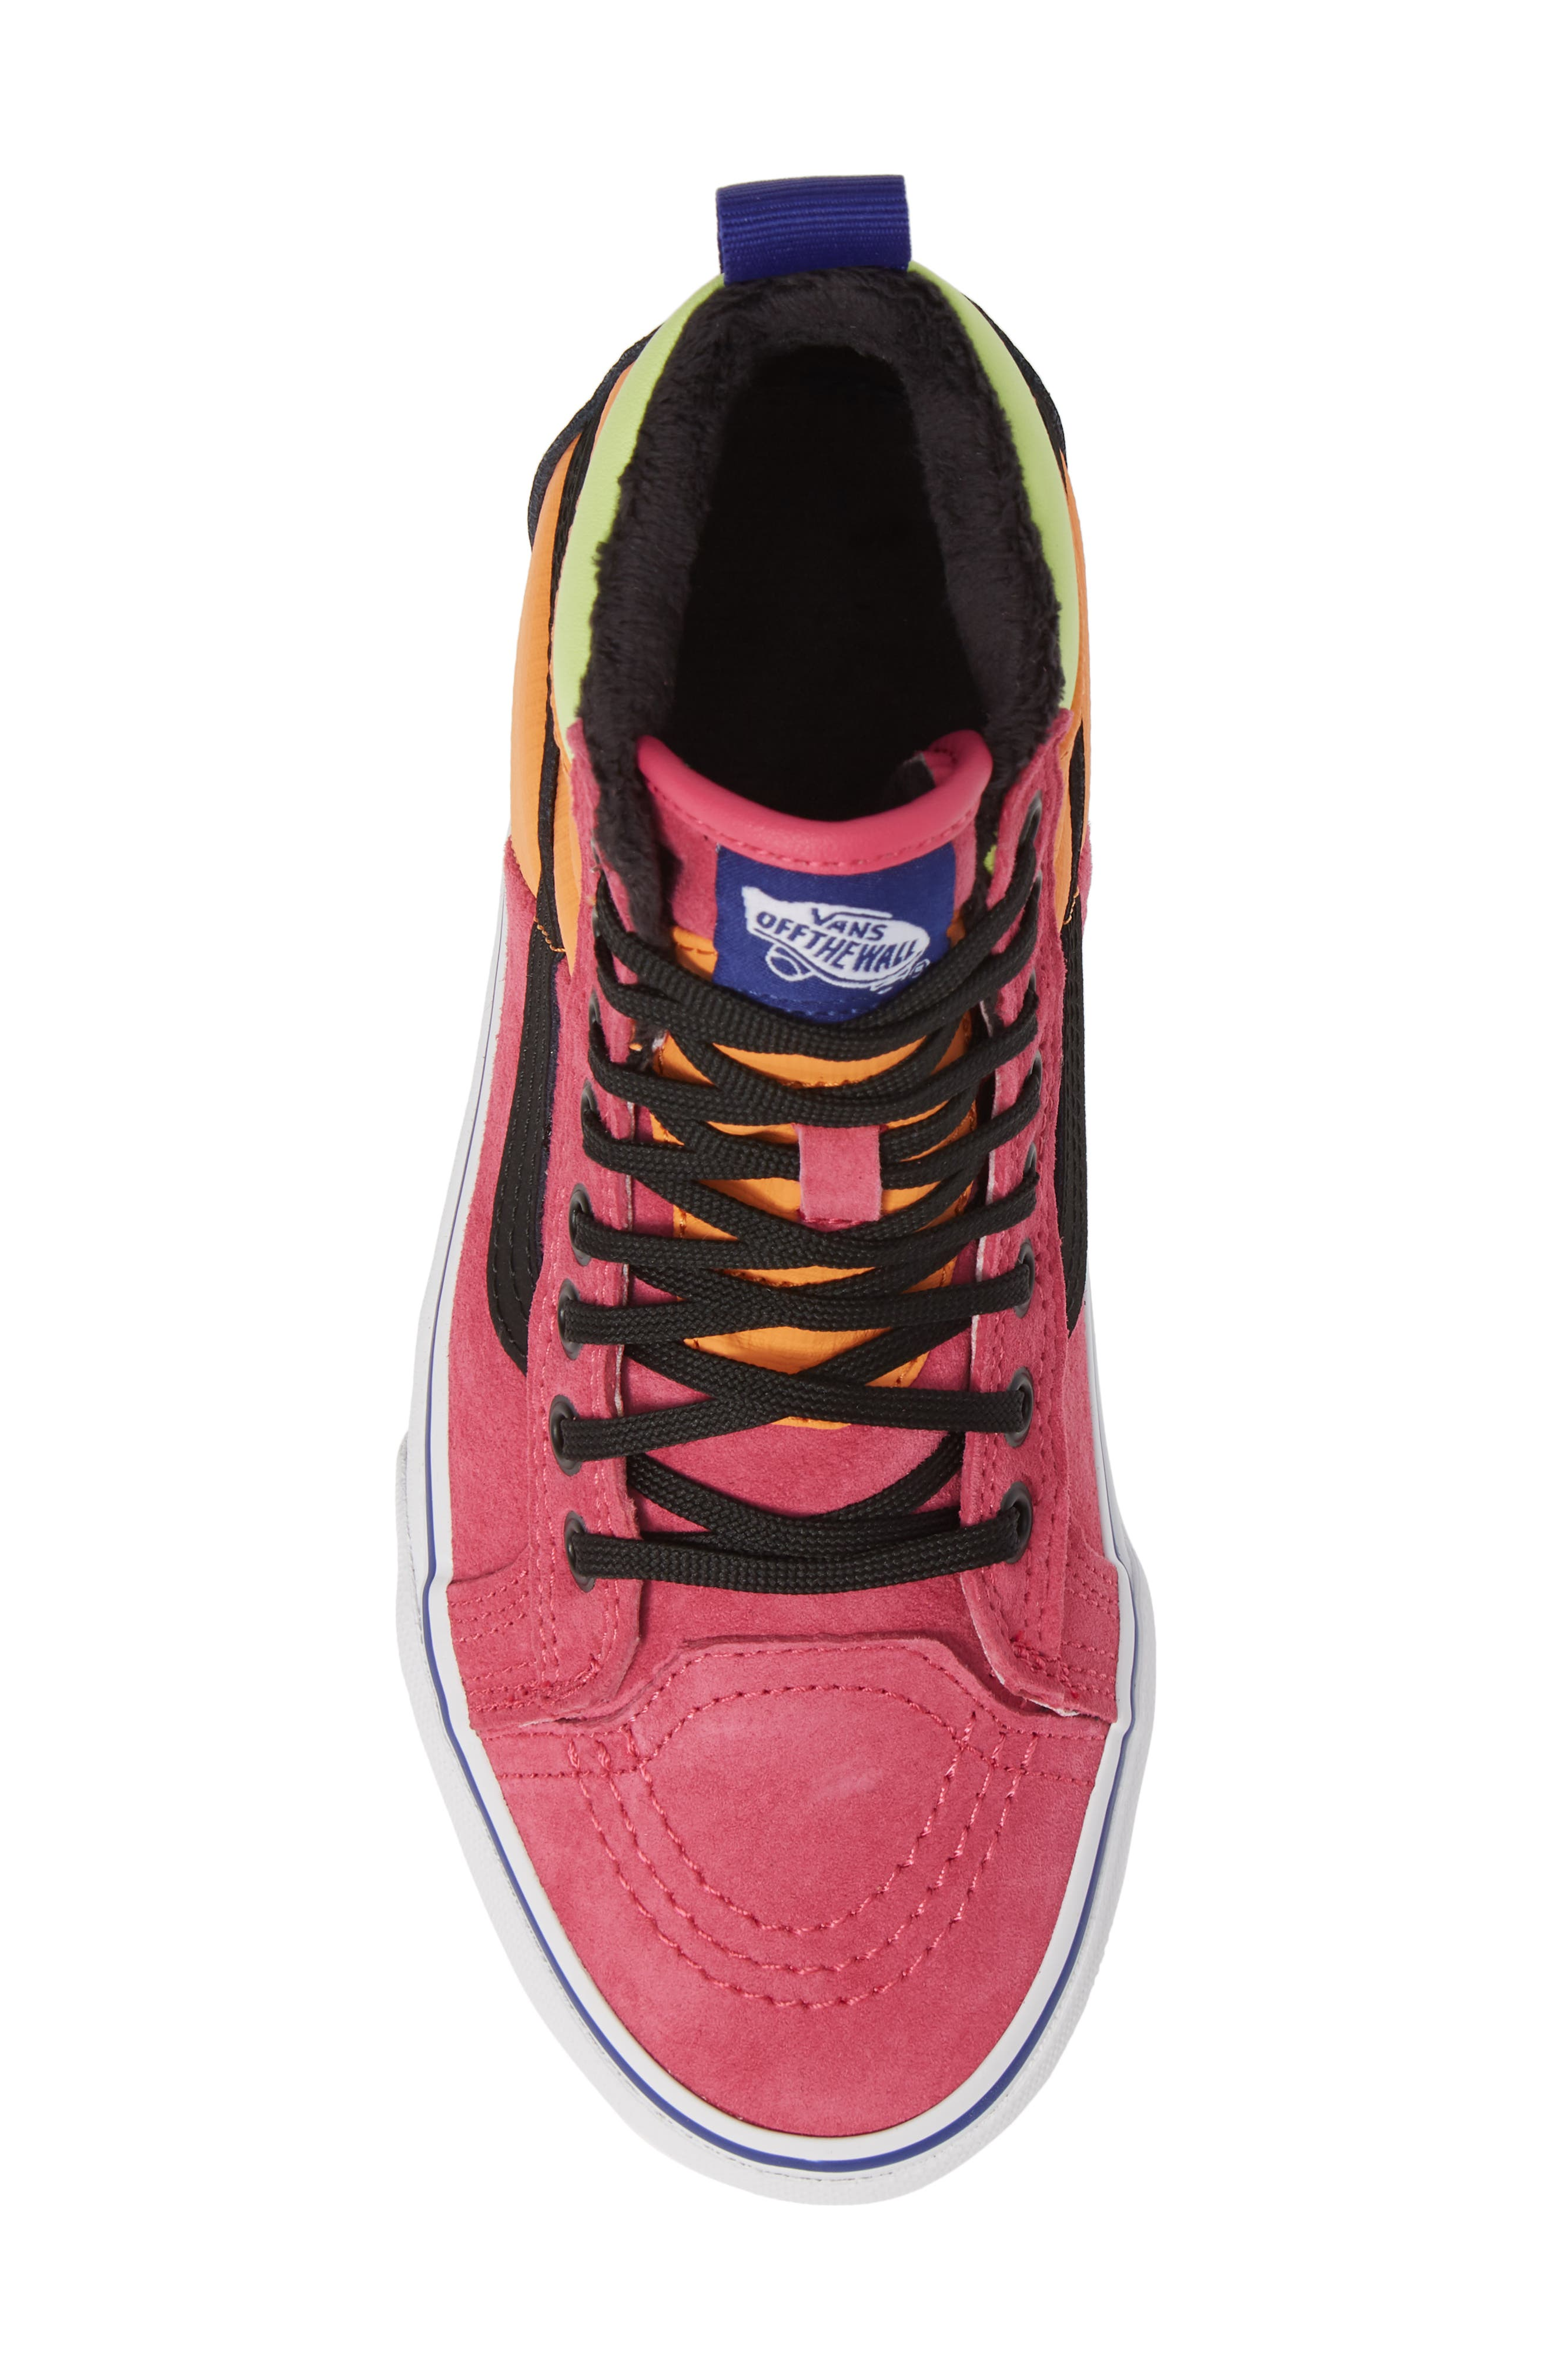 VANS, Sk8-Hi 46 MTE DX Sneaker, Alternate thumbnail 5, color, PINK YARROW/ TANGERINE/ BLACK